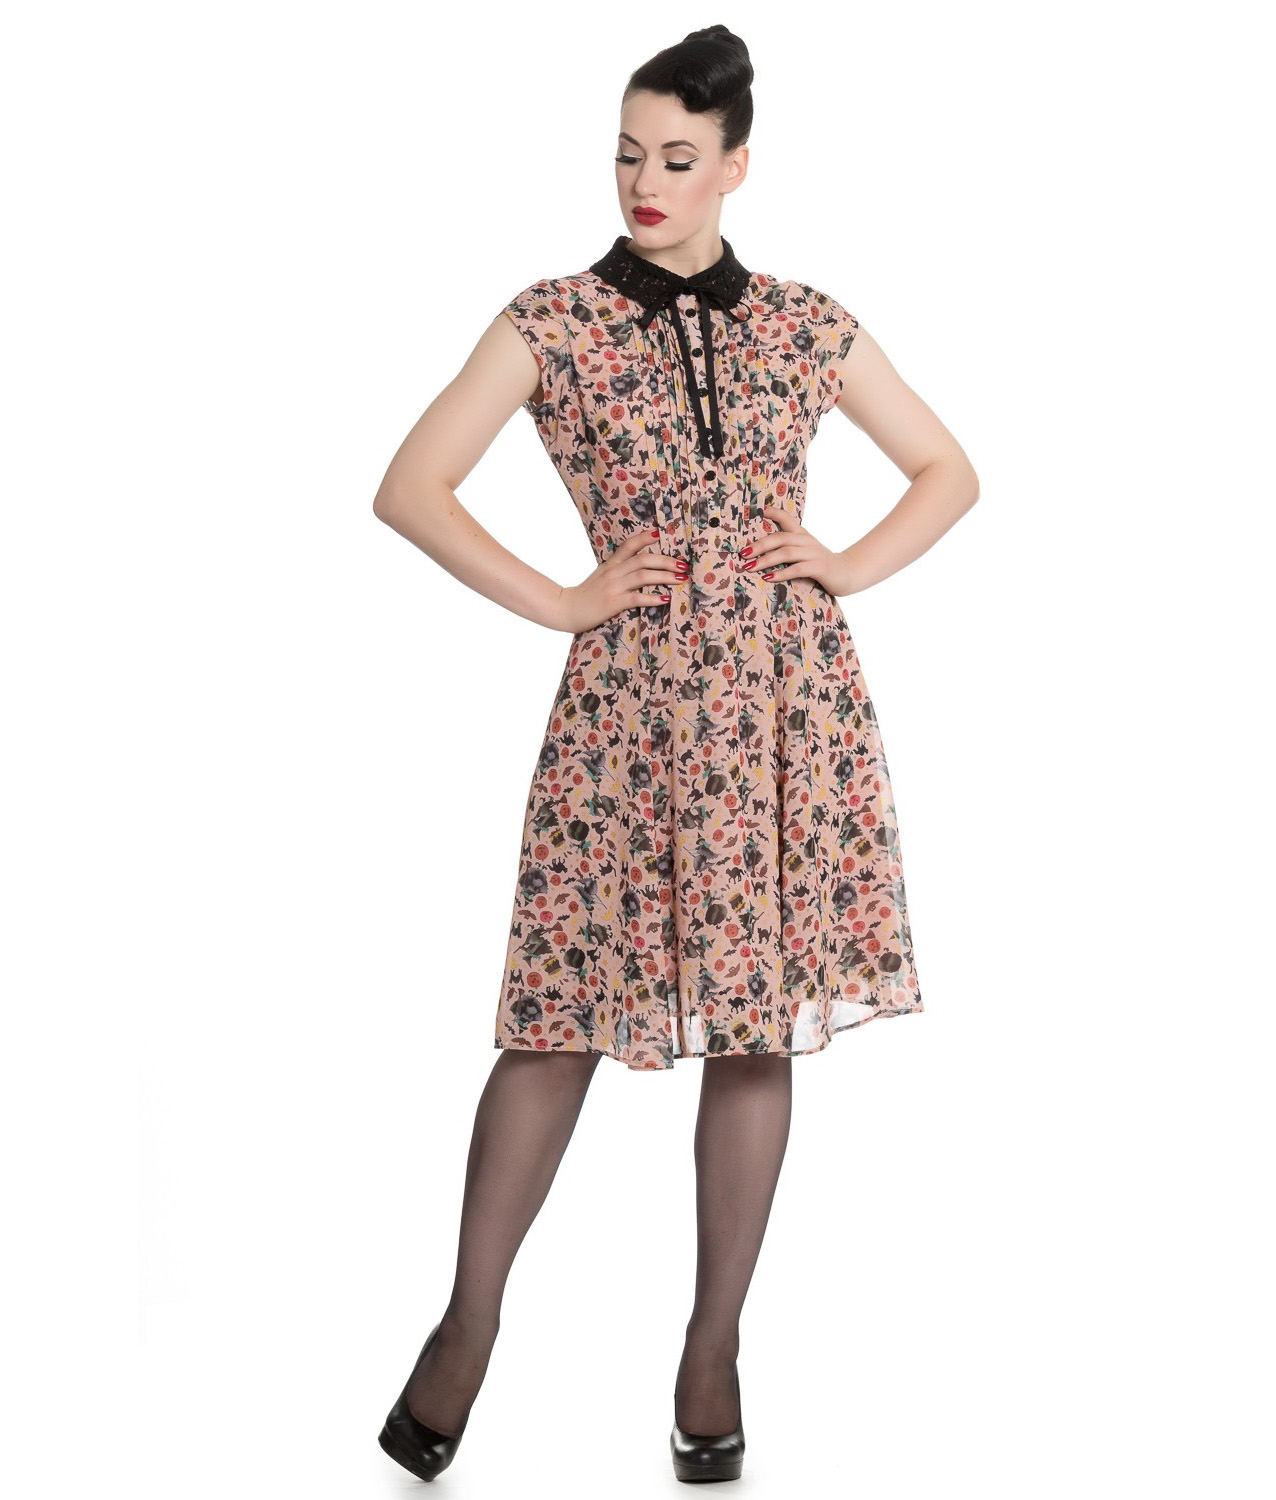 Hell-Bunny-Gothic-40s-50s-Beige-Dress-ZELDA-Witchy-Halloween-All-Sizes thumbnail 7